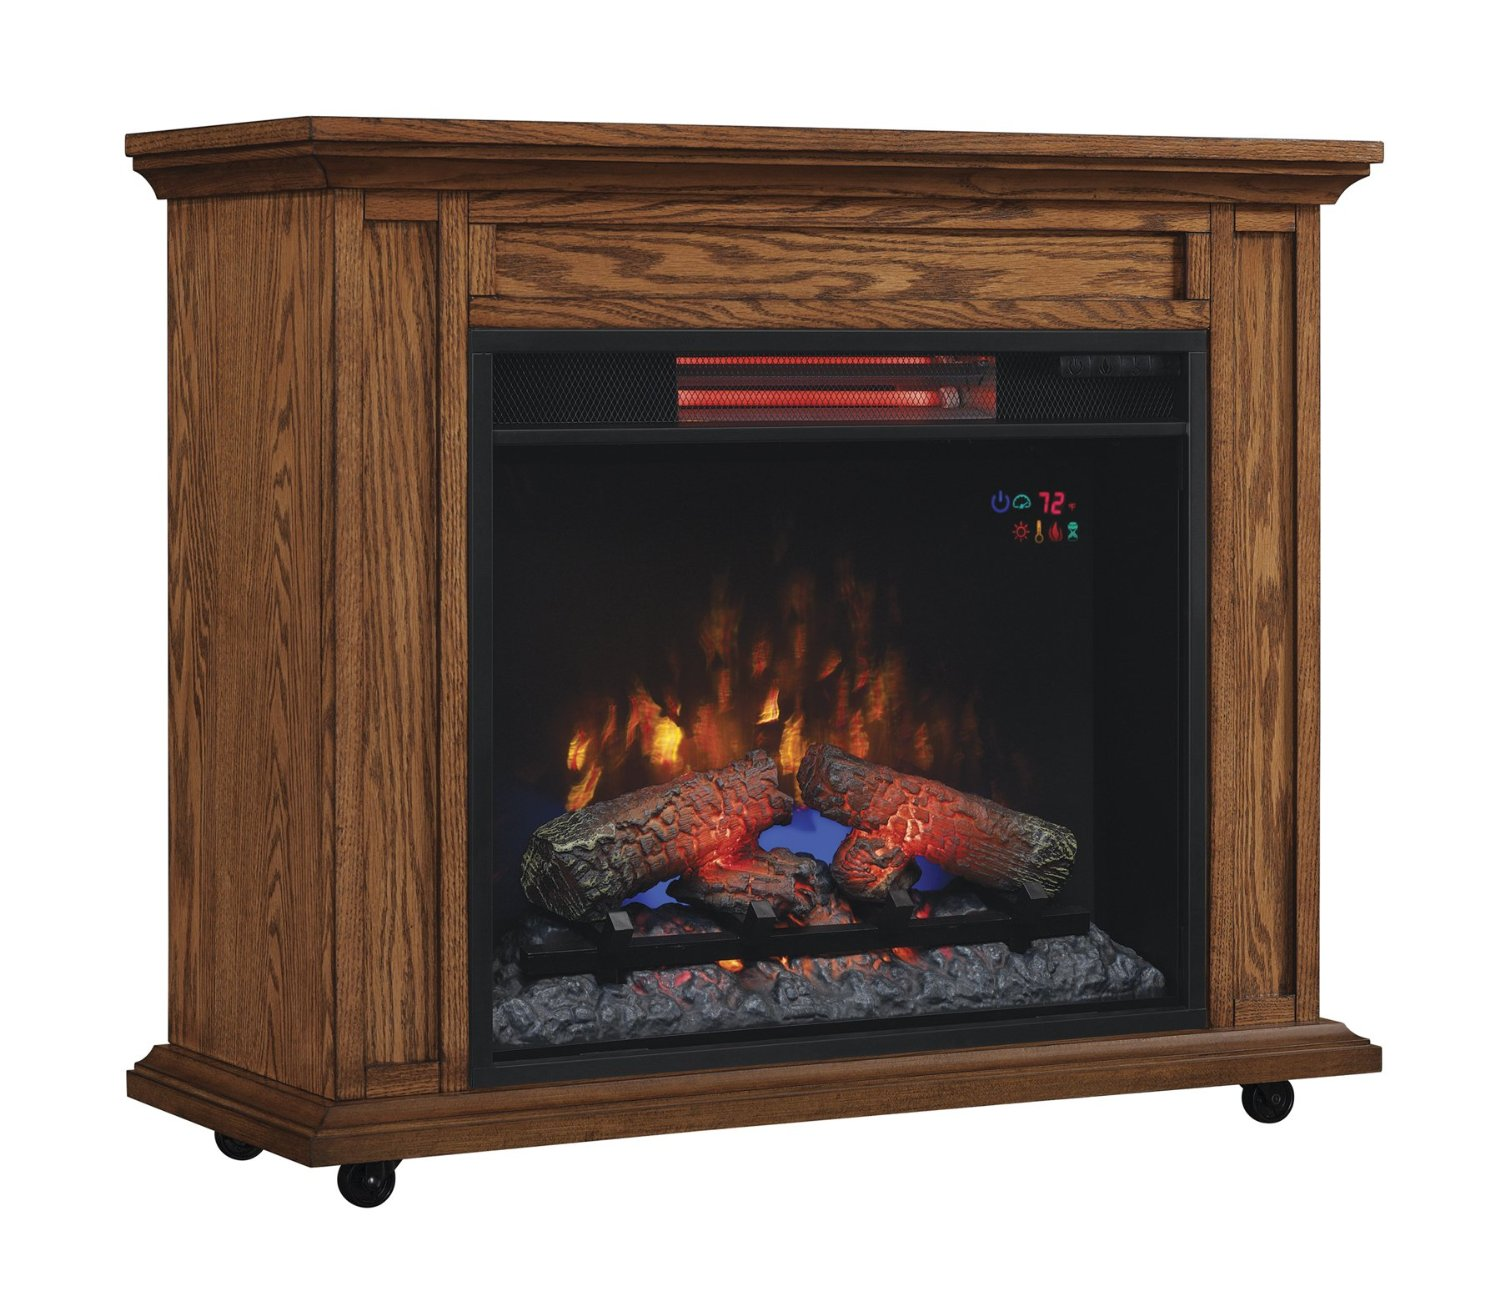 33 infrared premium oak rolling mantel electric fireplace